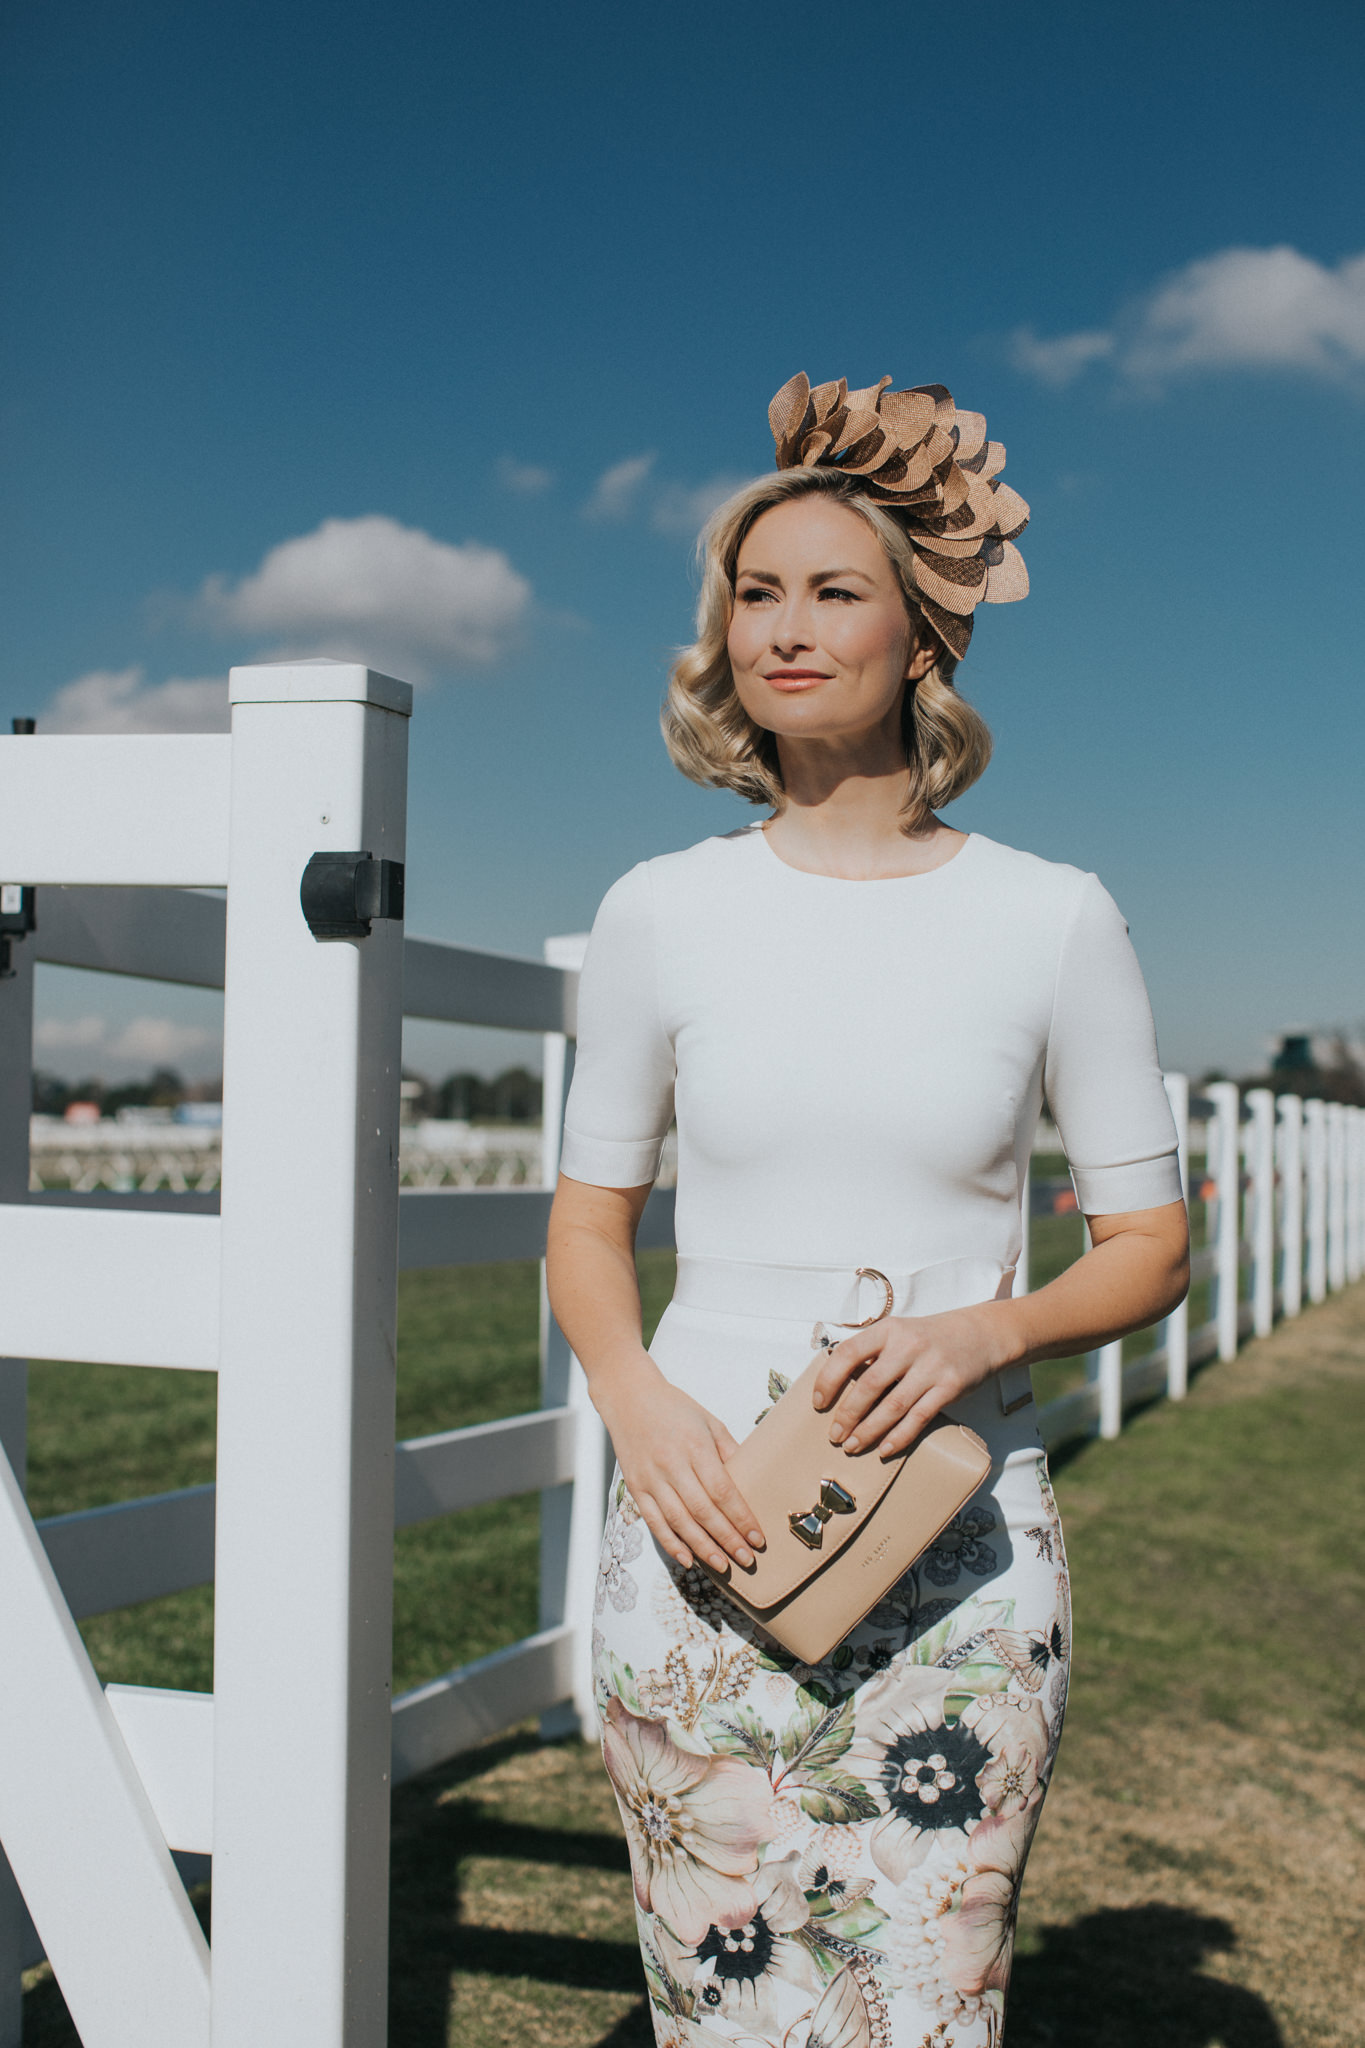 spring racing fashion 2017/2018